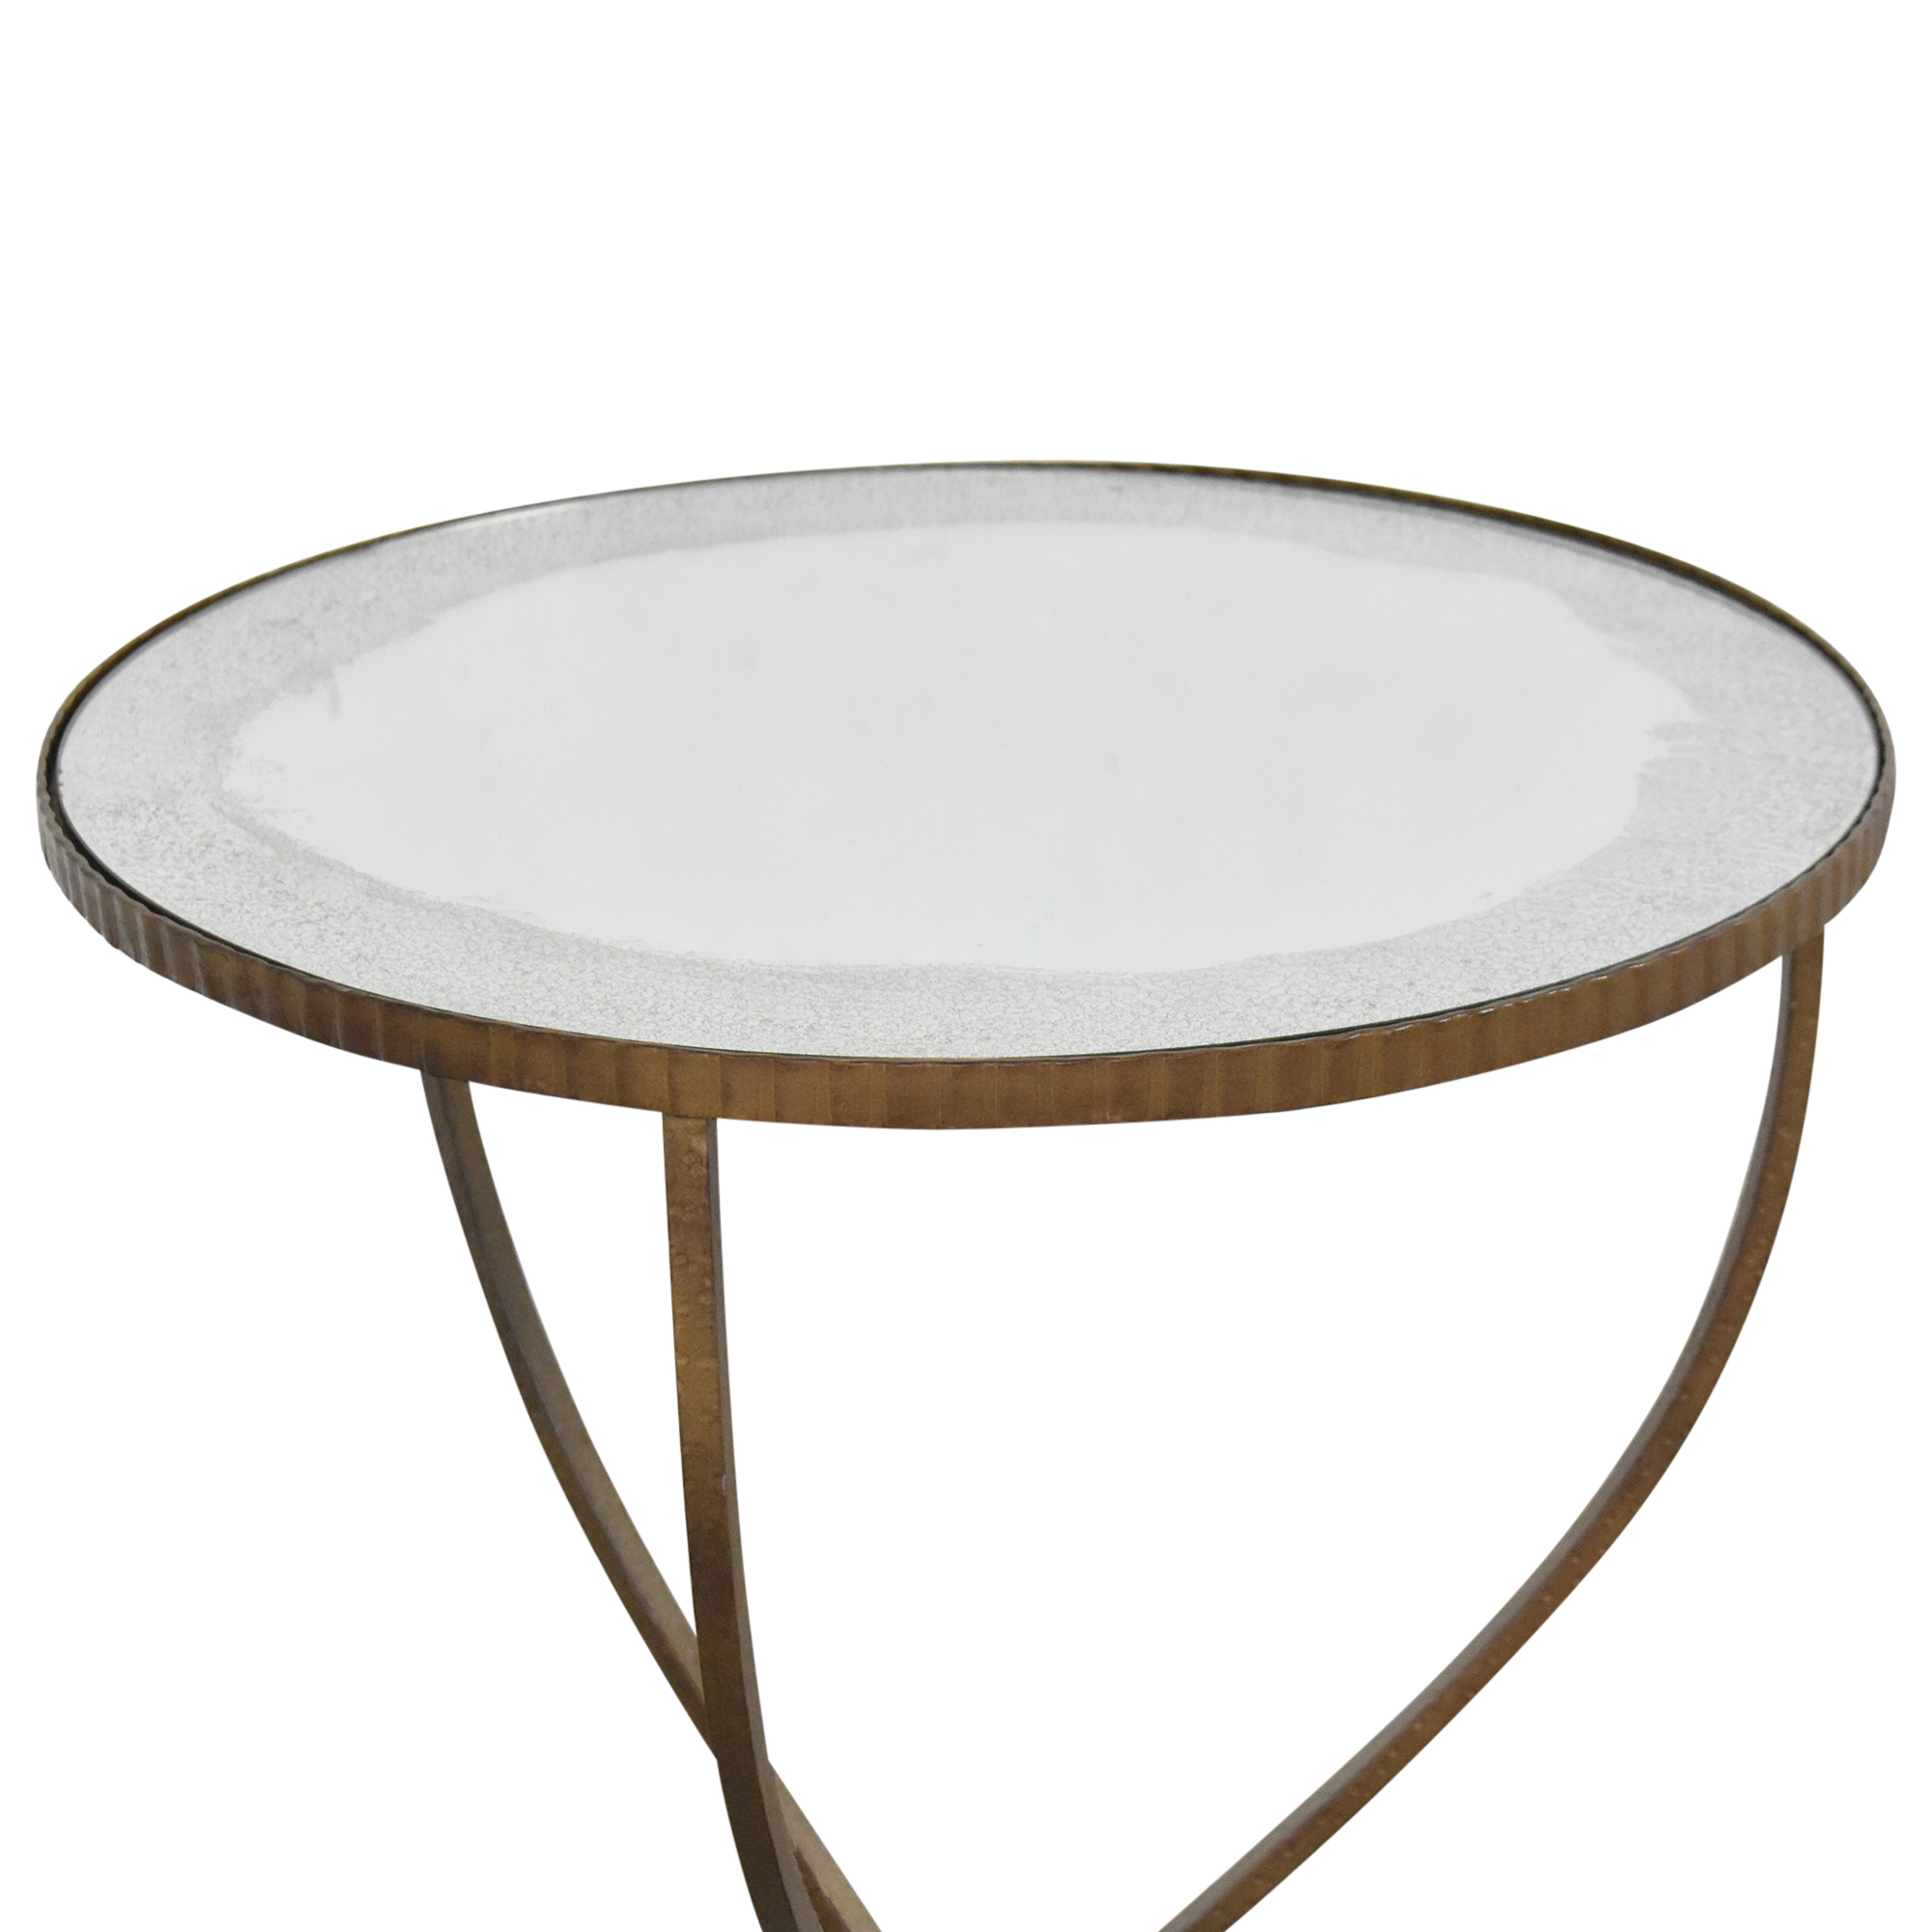 Crate & Barrel Crate & Barrel Round Coffee Table price